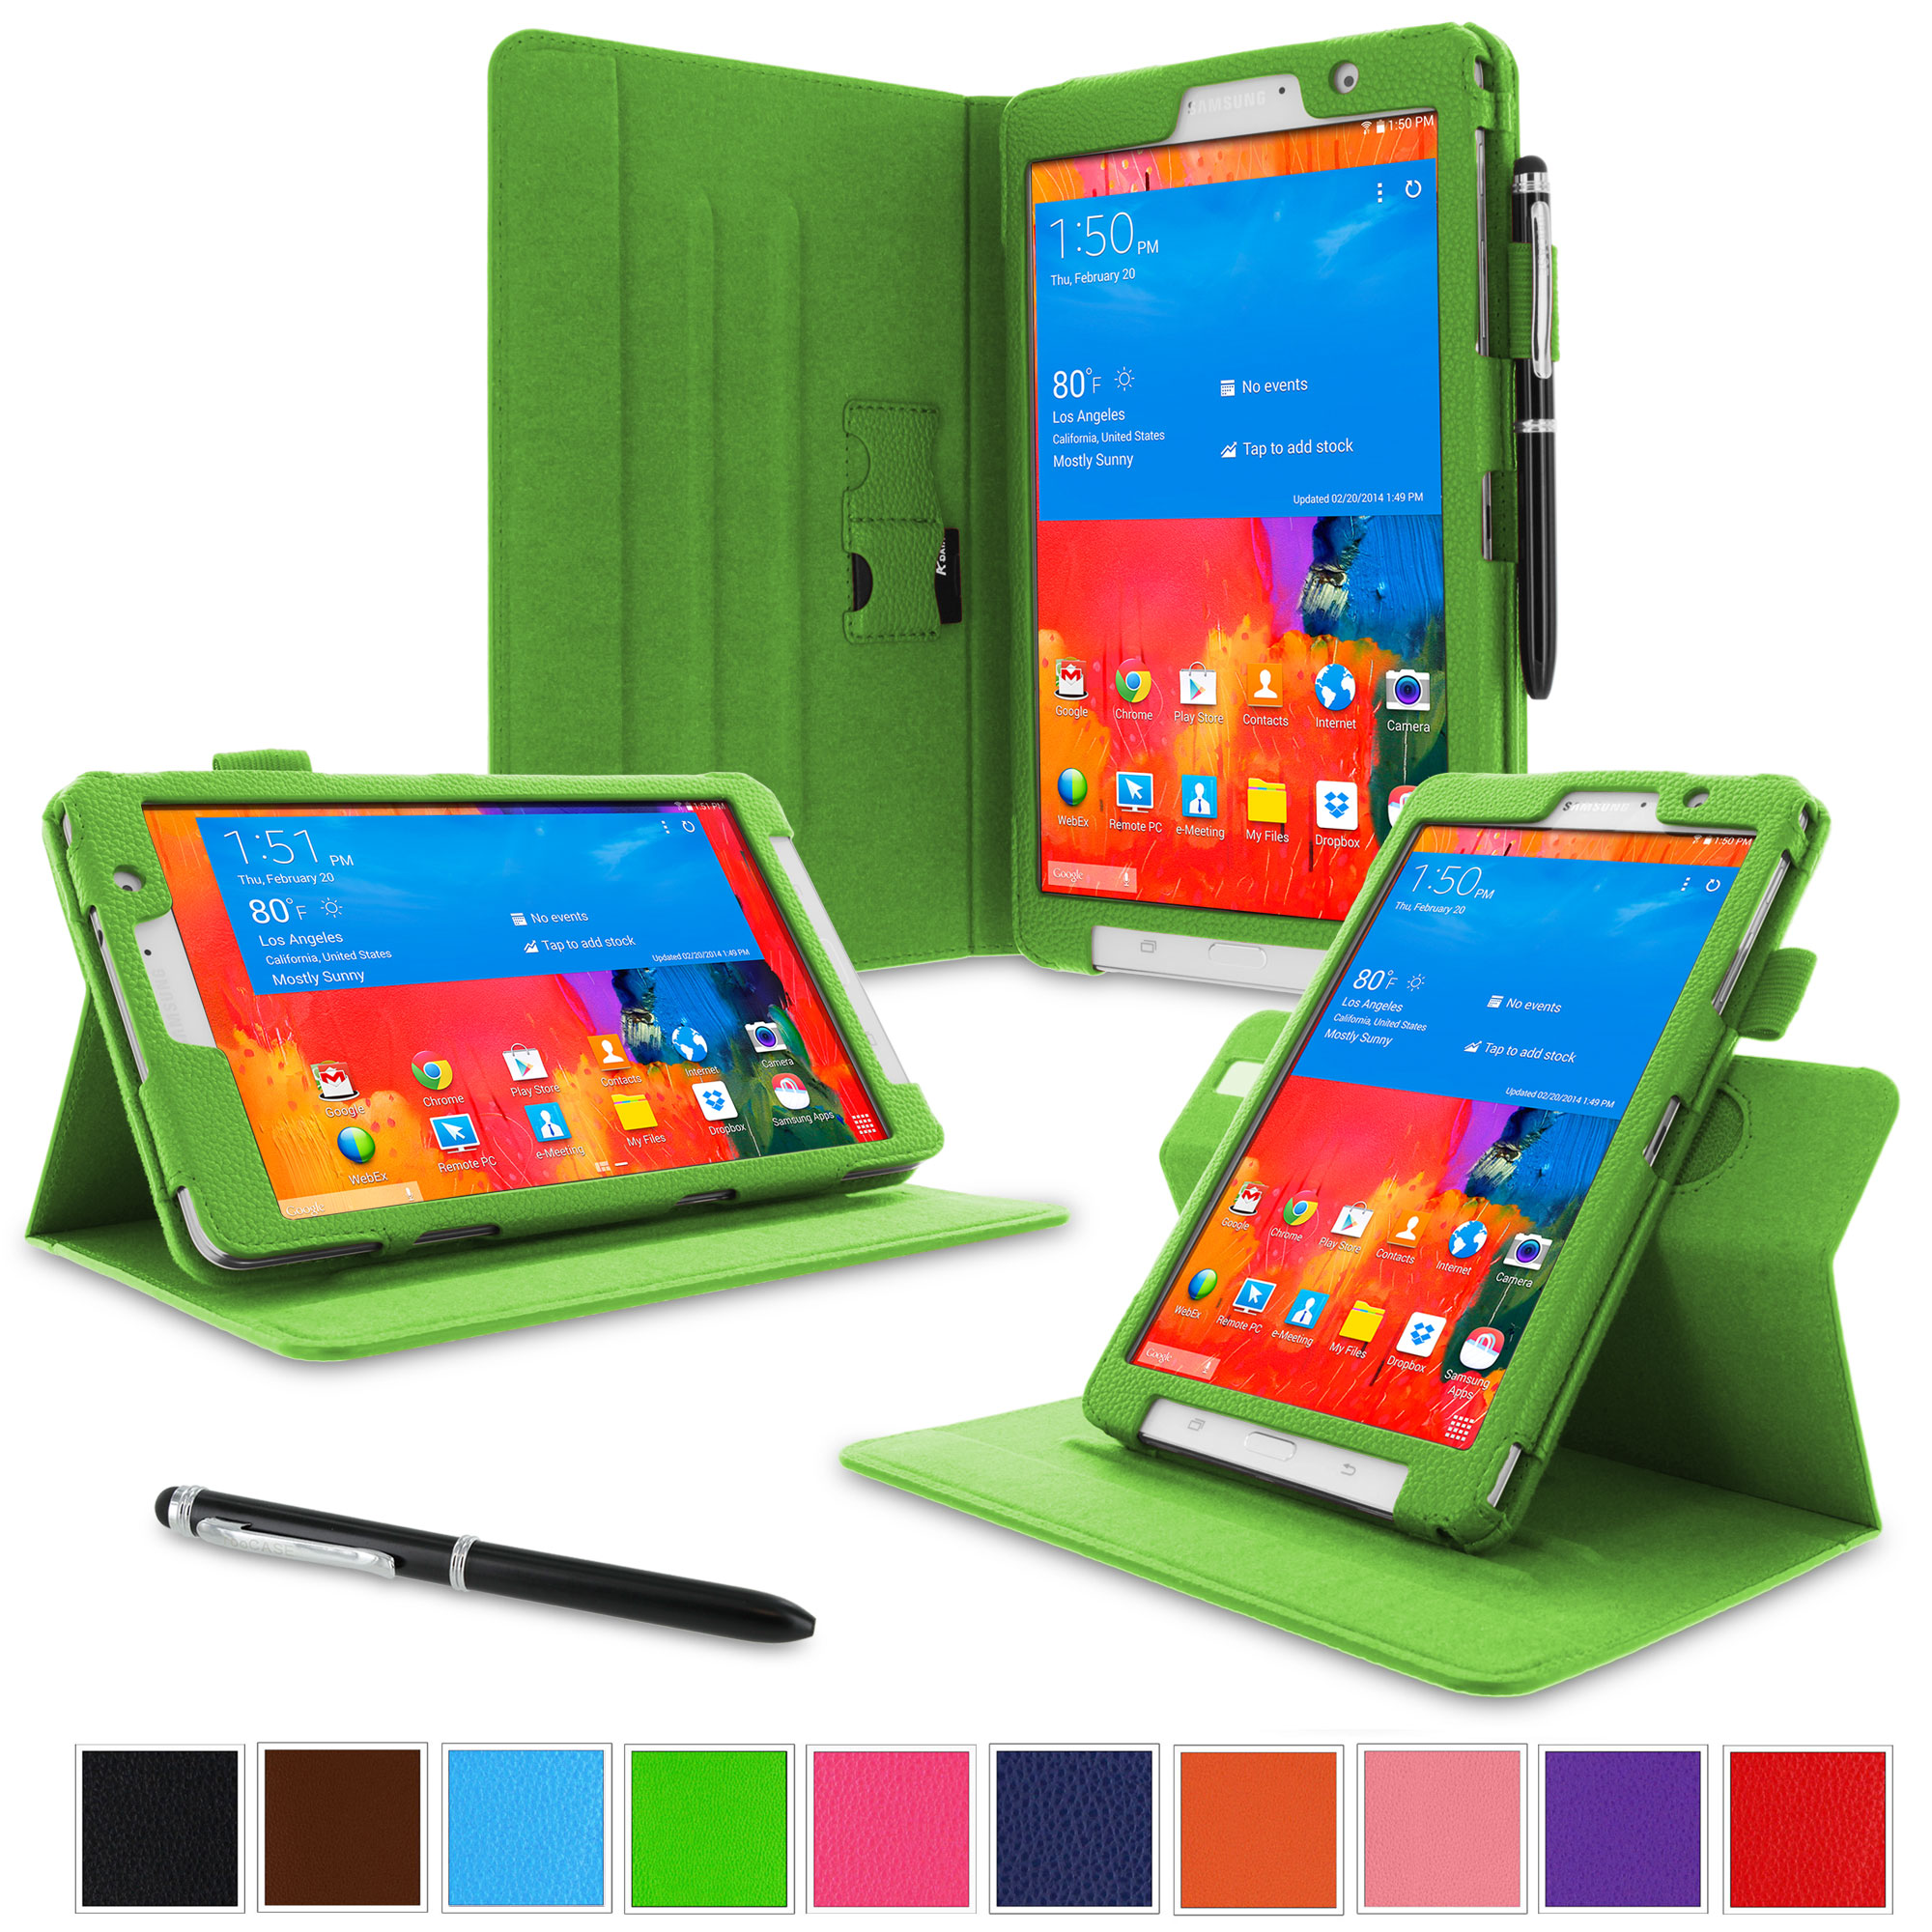 """rooCASE Samsung Galaxy Tab Pro 8.4 Case - Dual View Multi-Angle Stand 8.4-Inch 8.4"""" Tablet Case - GREEN (With Auto Wake / Sleep Cover)"""